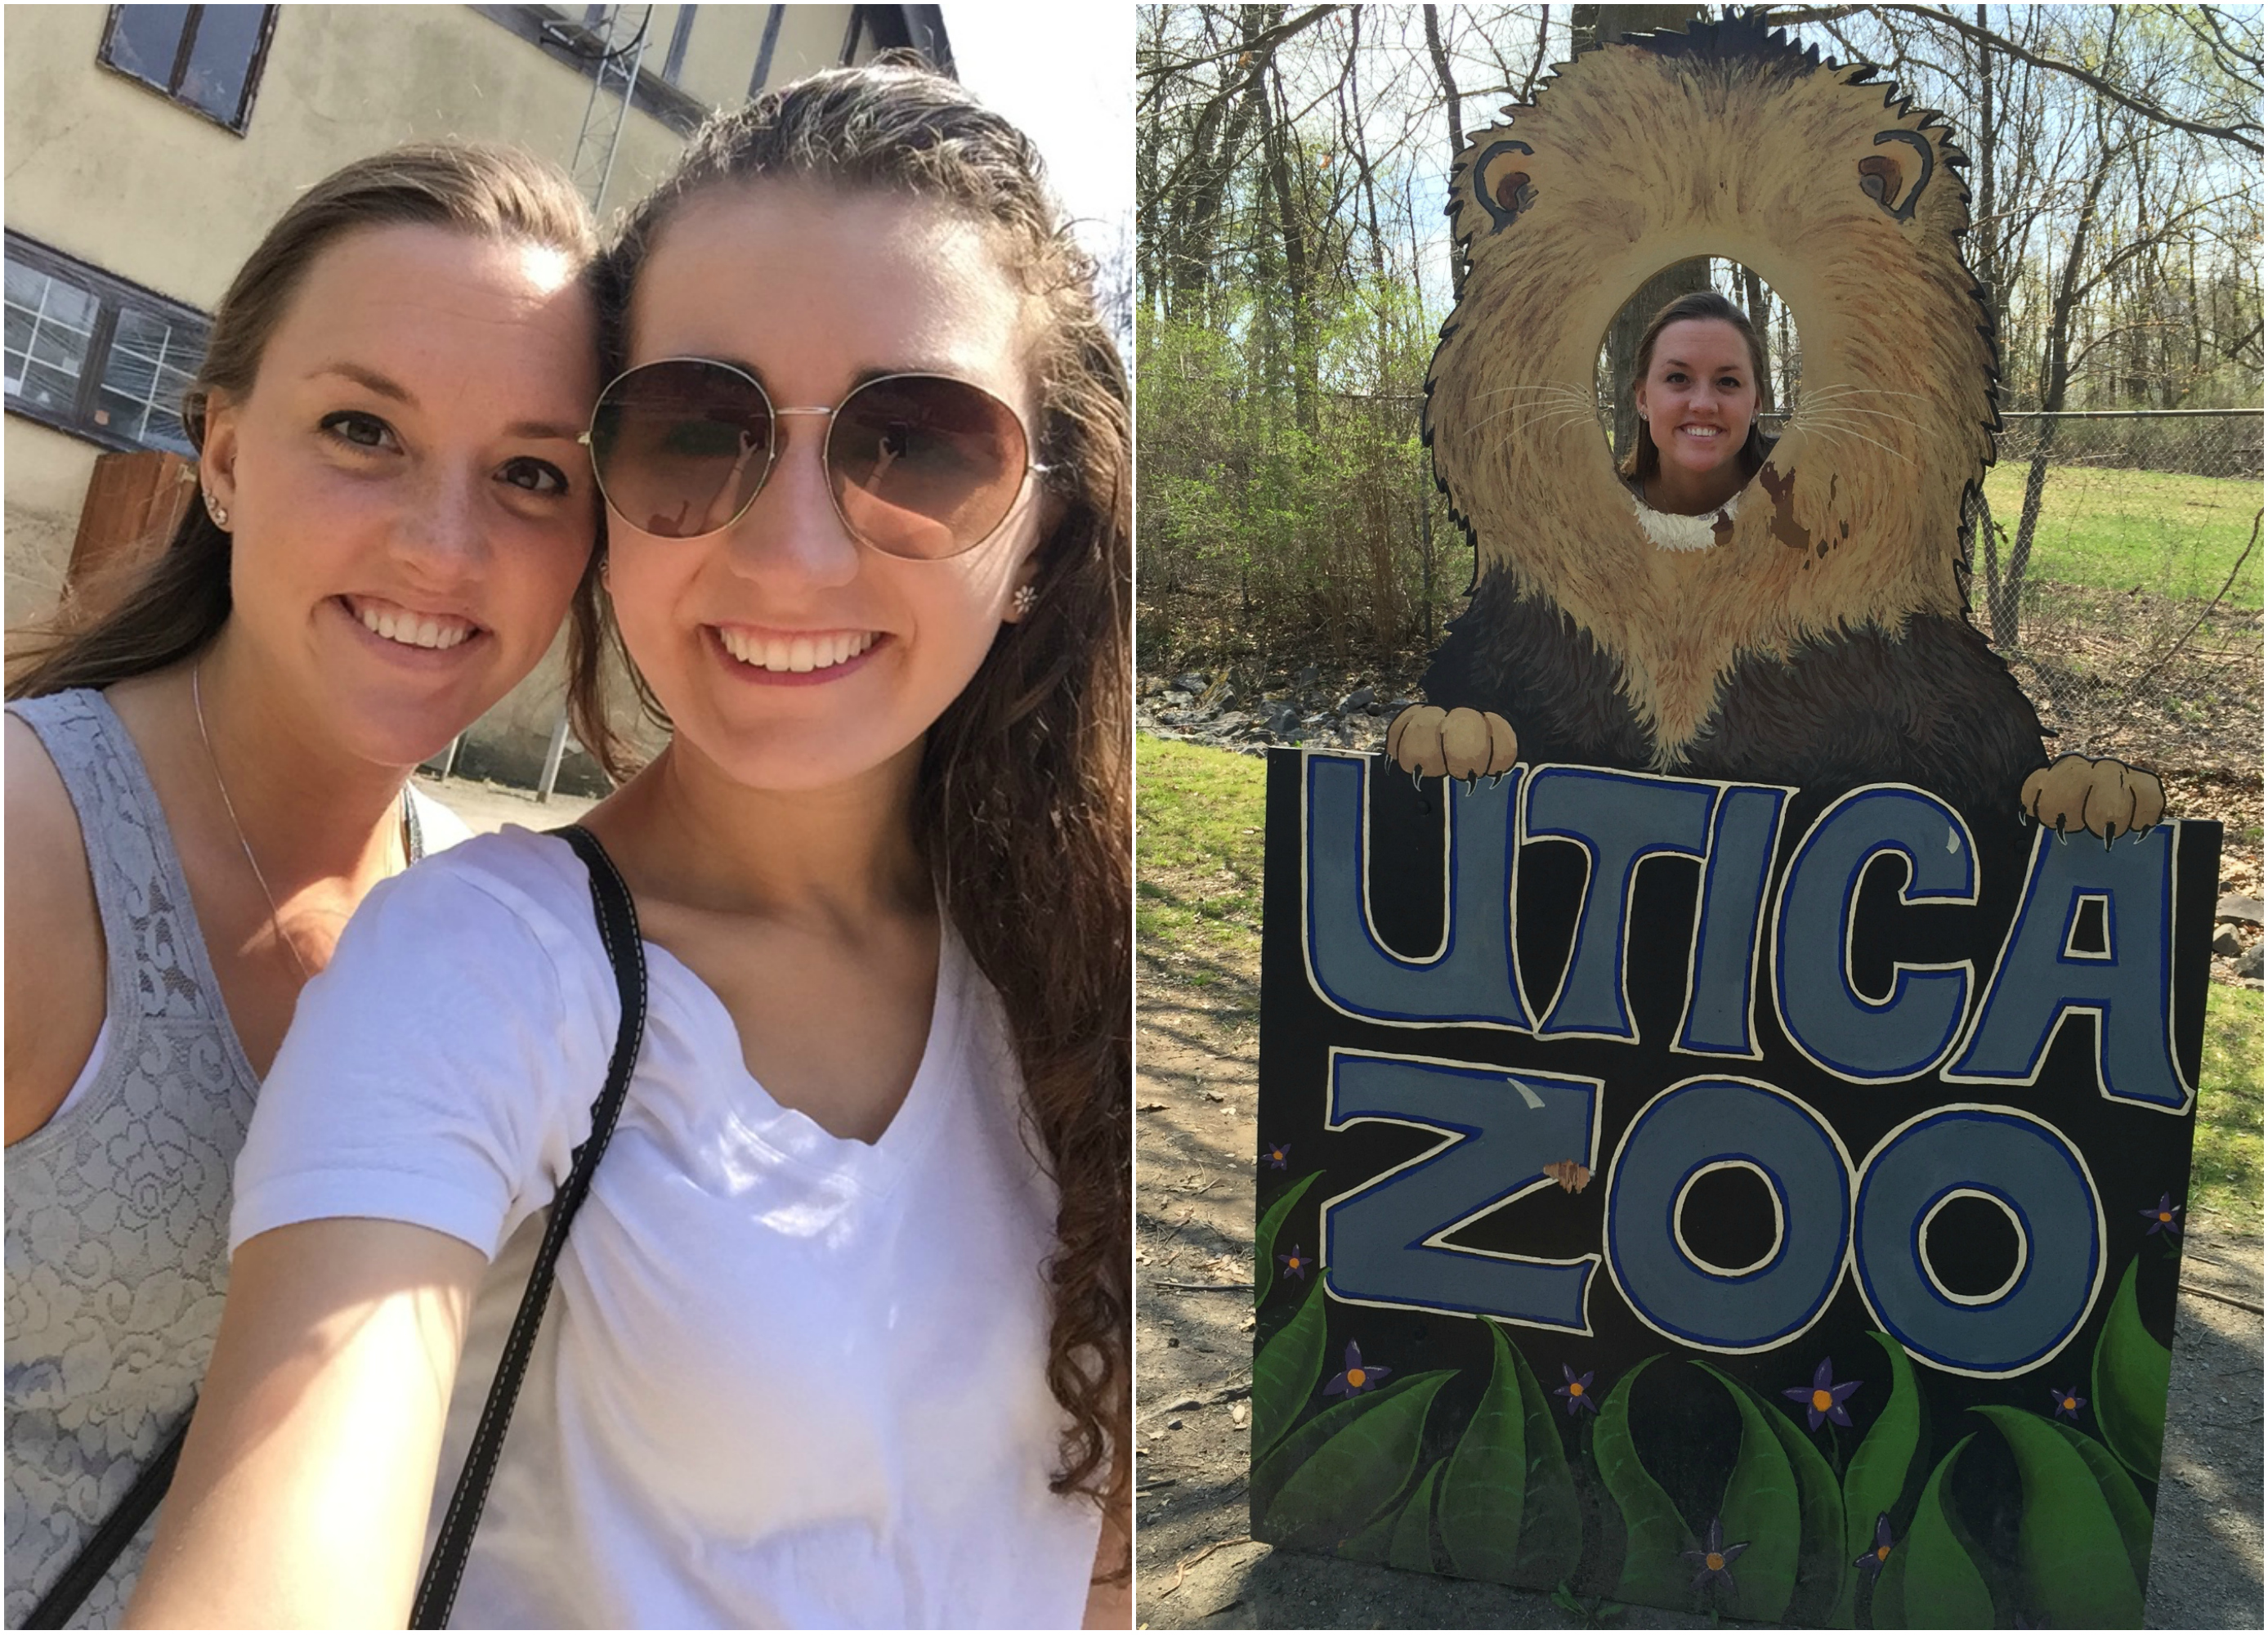 Being silly at the zoo with Alexia Bigart!